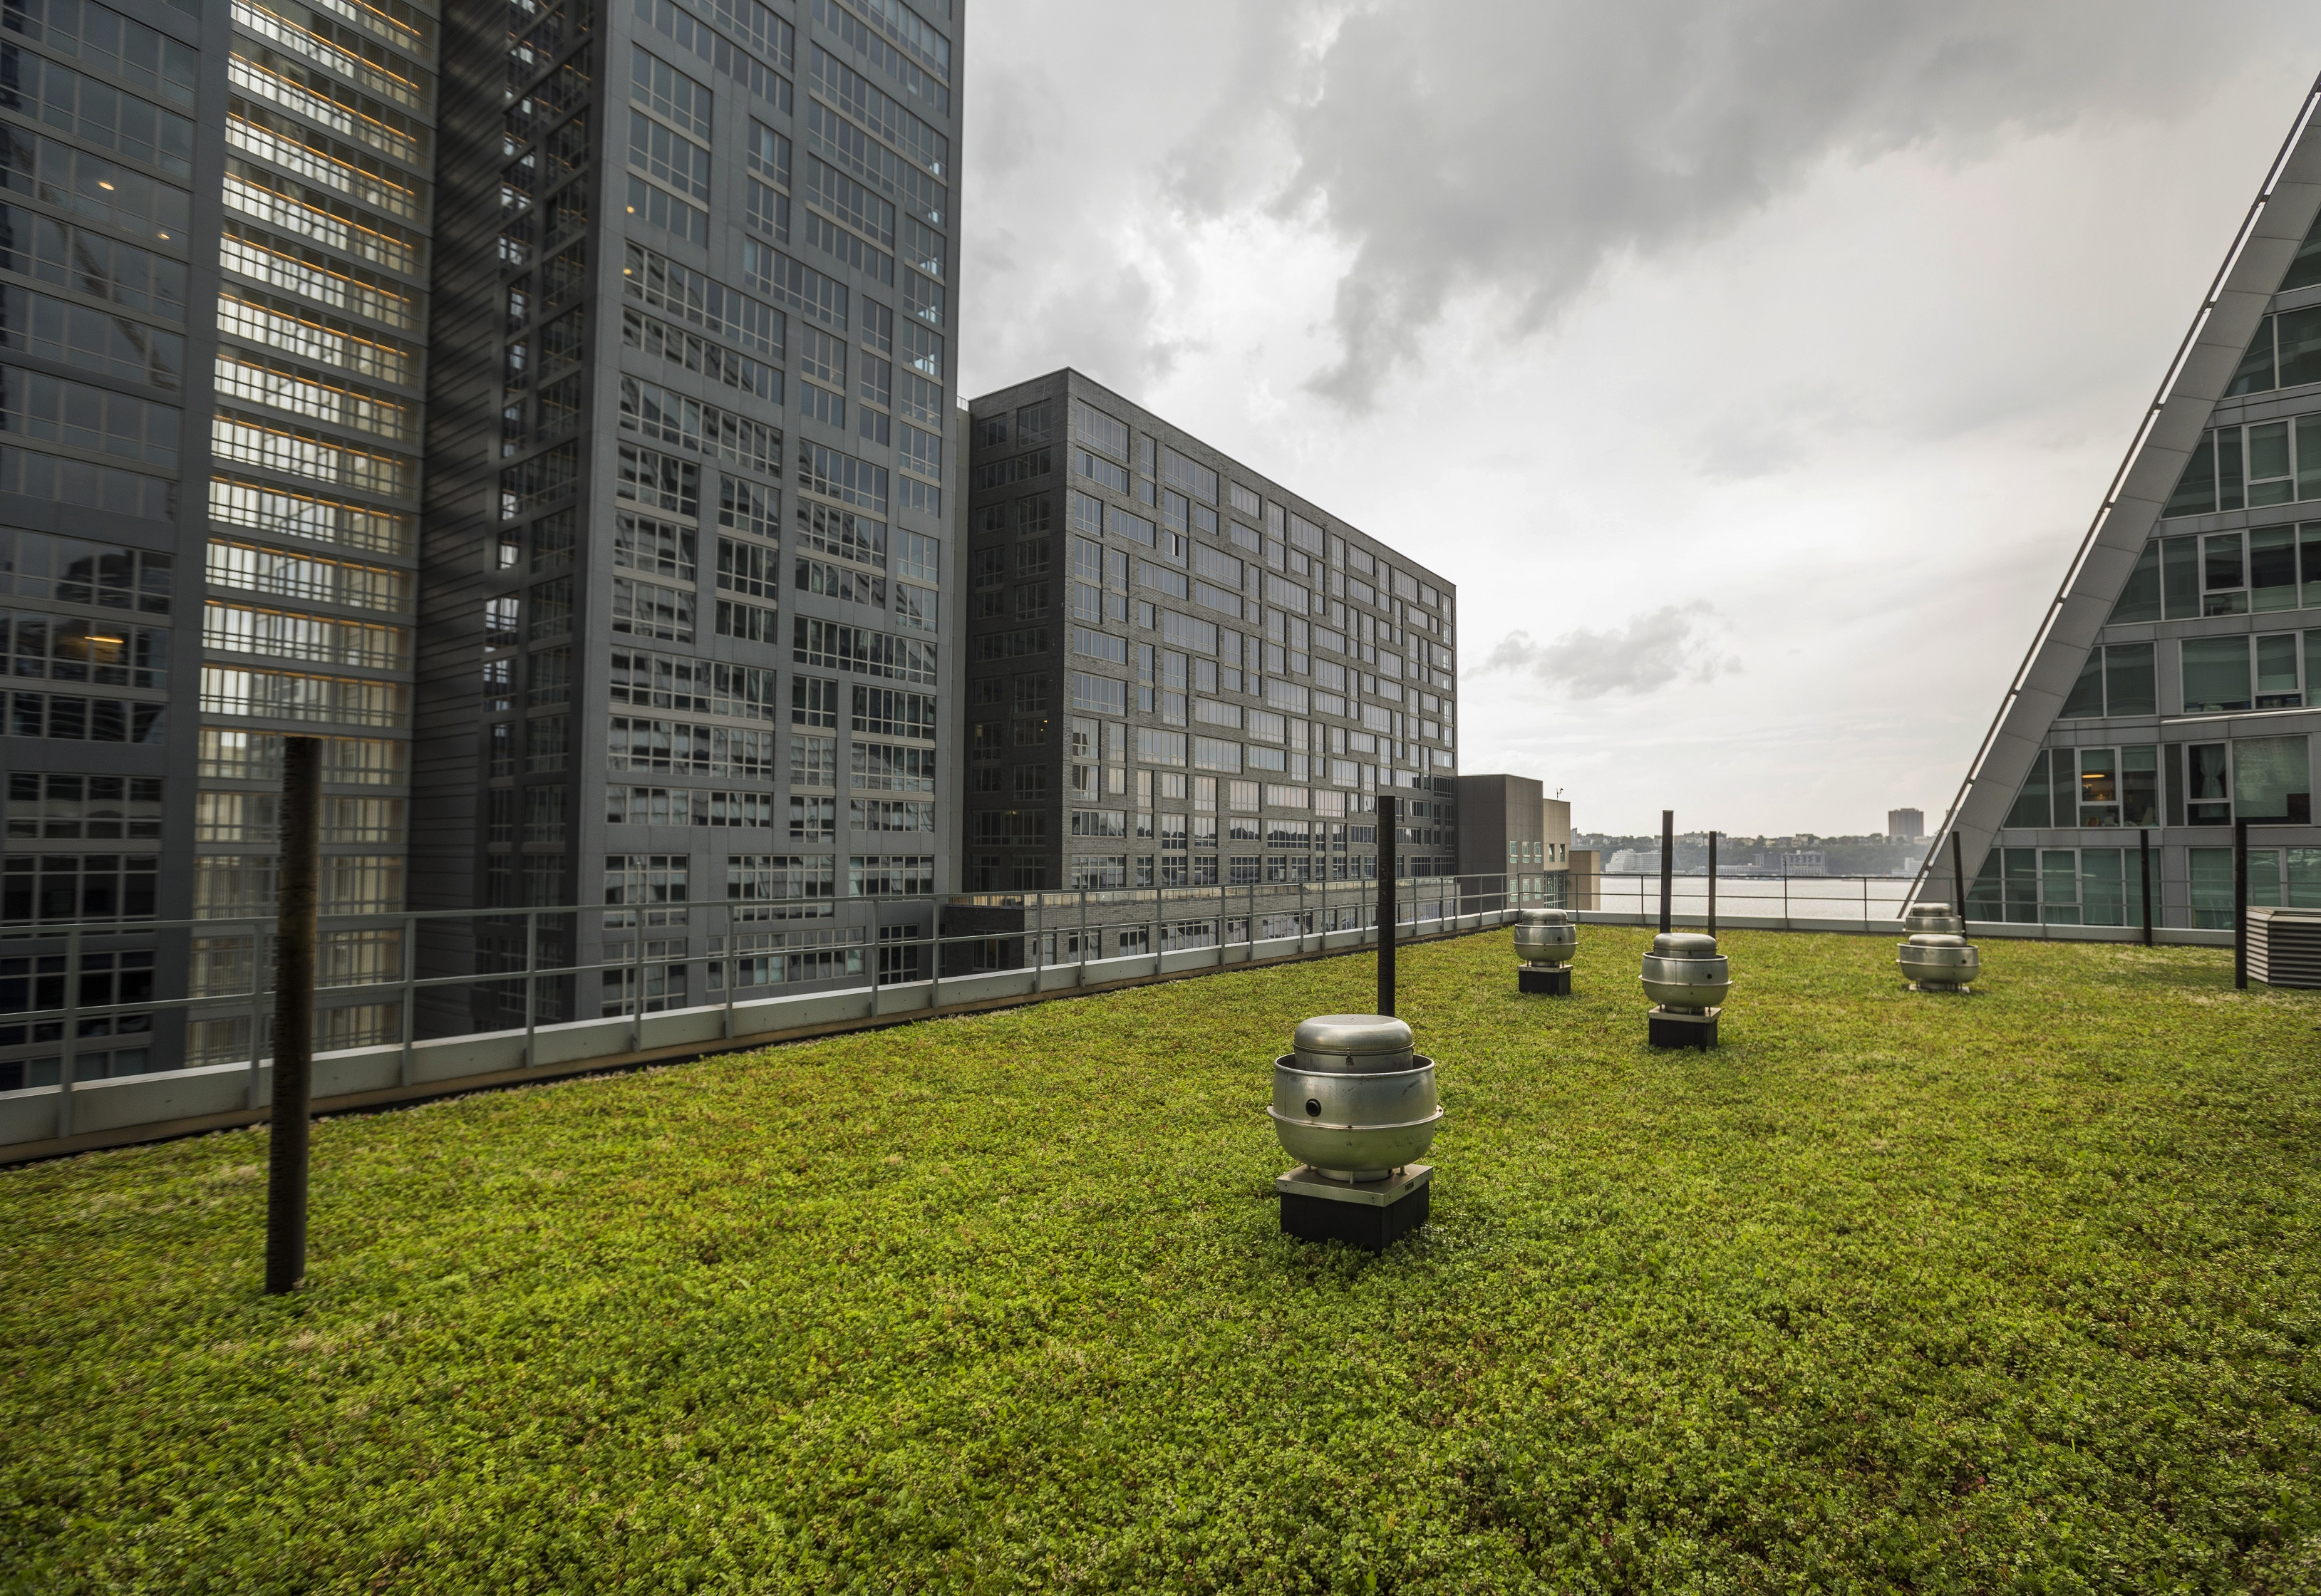 The minimalist green roof proves that a clean design can make a dramatic statement. The impact is in its' simplicity.